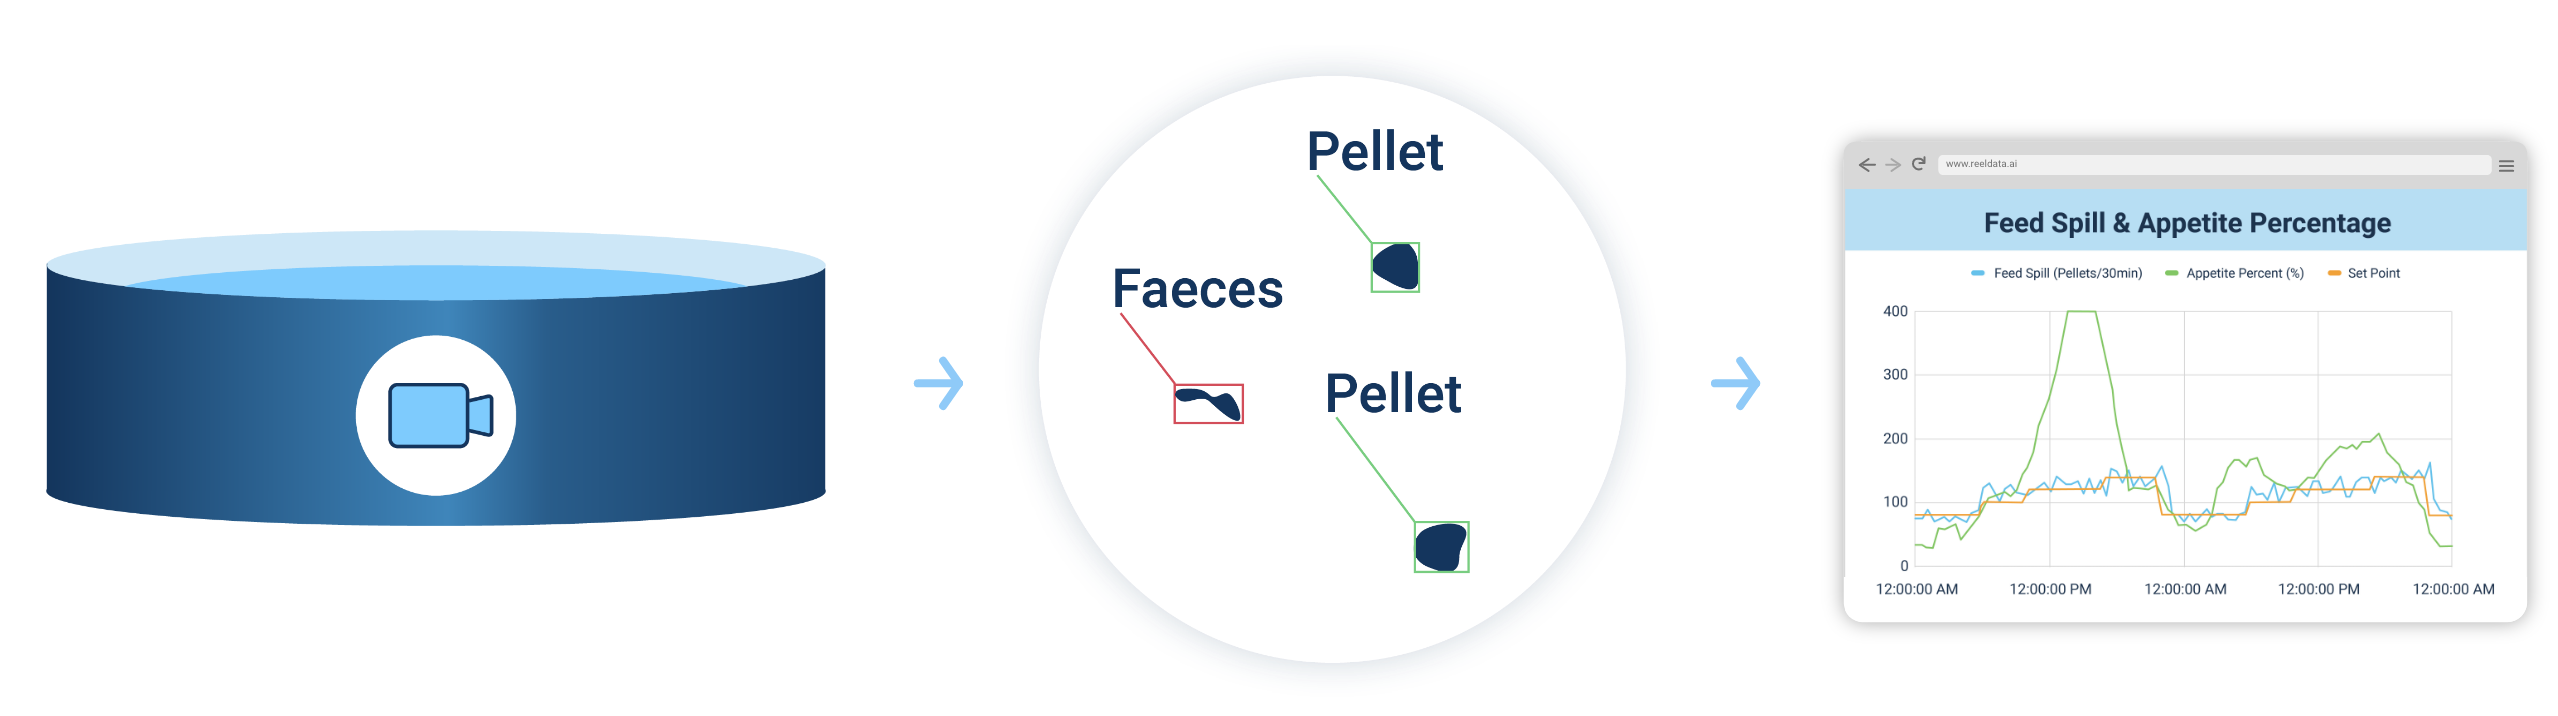 This is iconography that shows a tank with a camera system, a magnified view into pellet and feces counting and a graphic of a browser window that showcases the relation of time to feed spill, appetite percentage and set points on a graph.